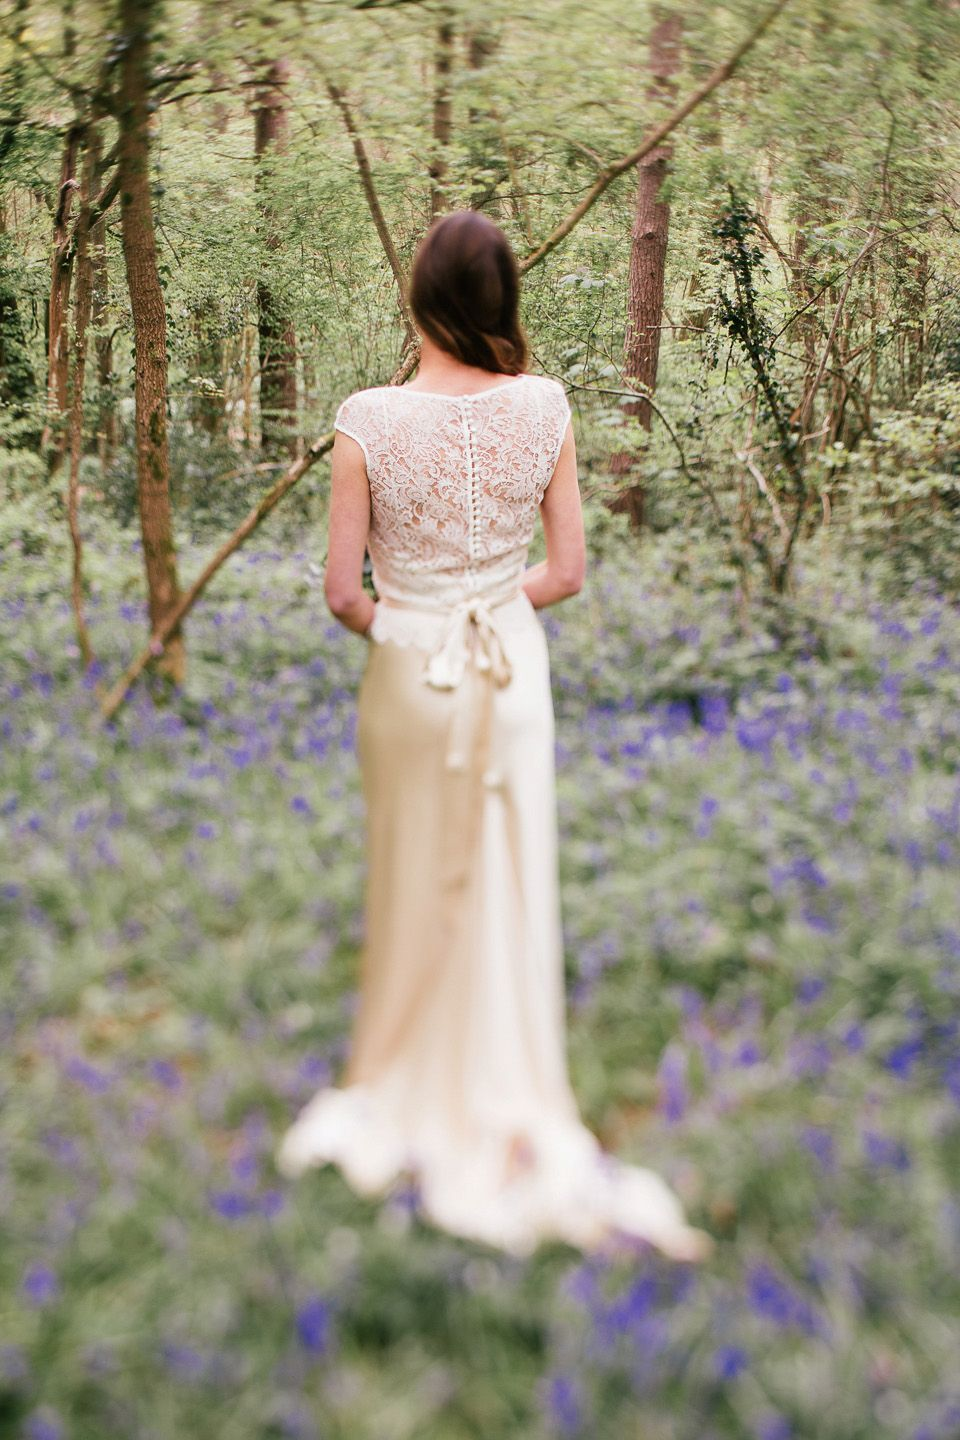 Bluebells and Barn Dancing - A Rustic Glamping Festival ...